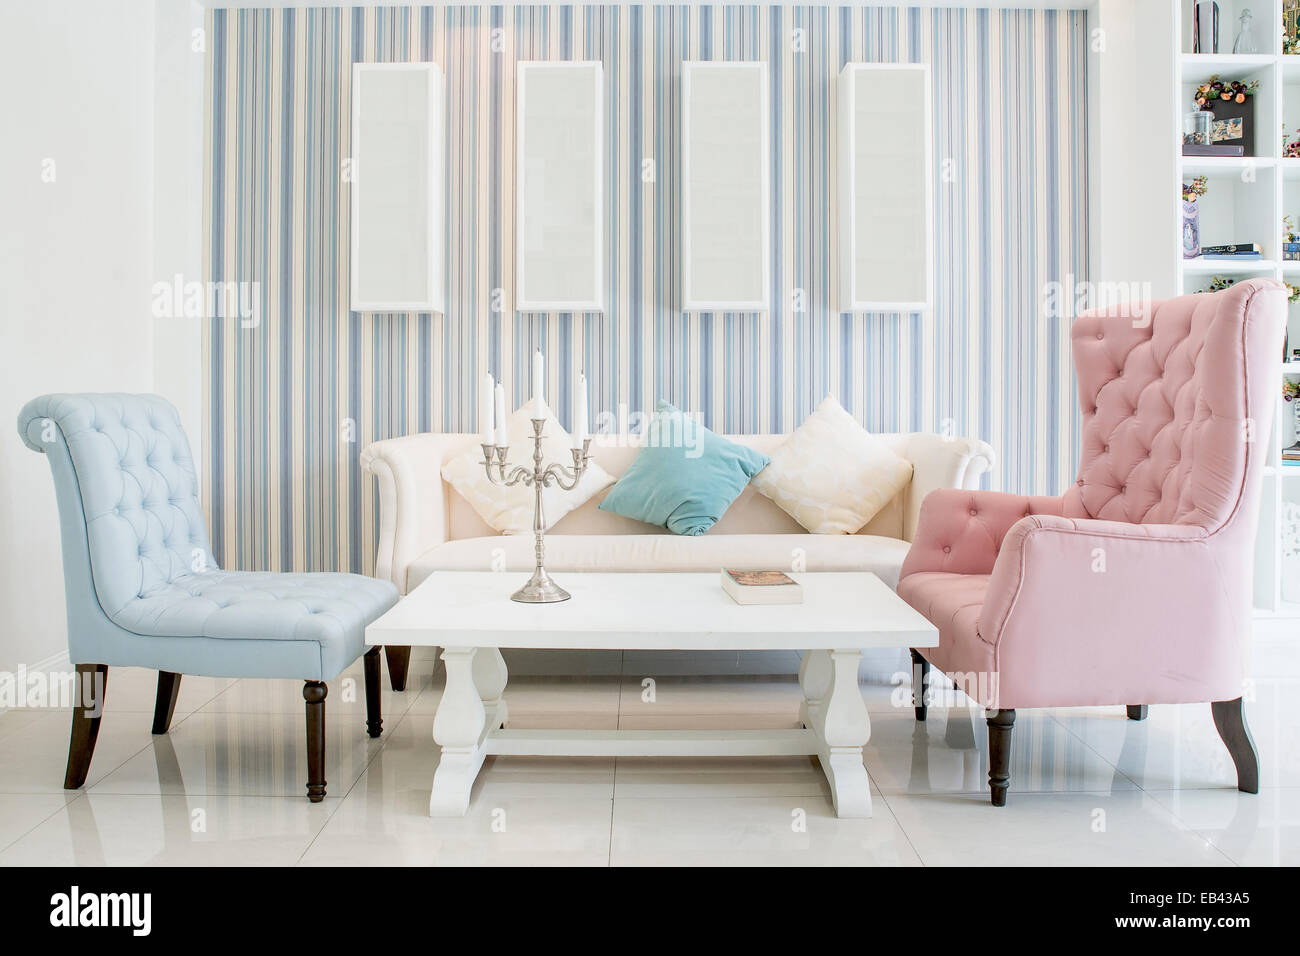 Classic Vintage Style Furniture Set in a living room Stock Photo ...